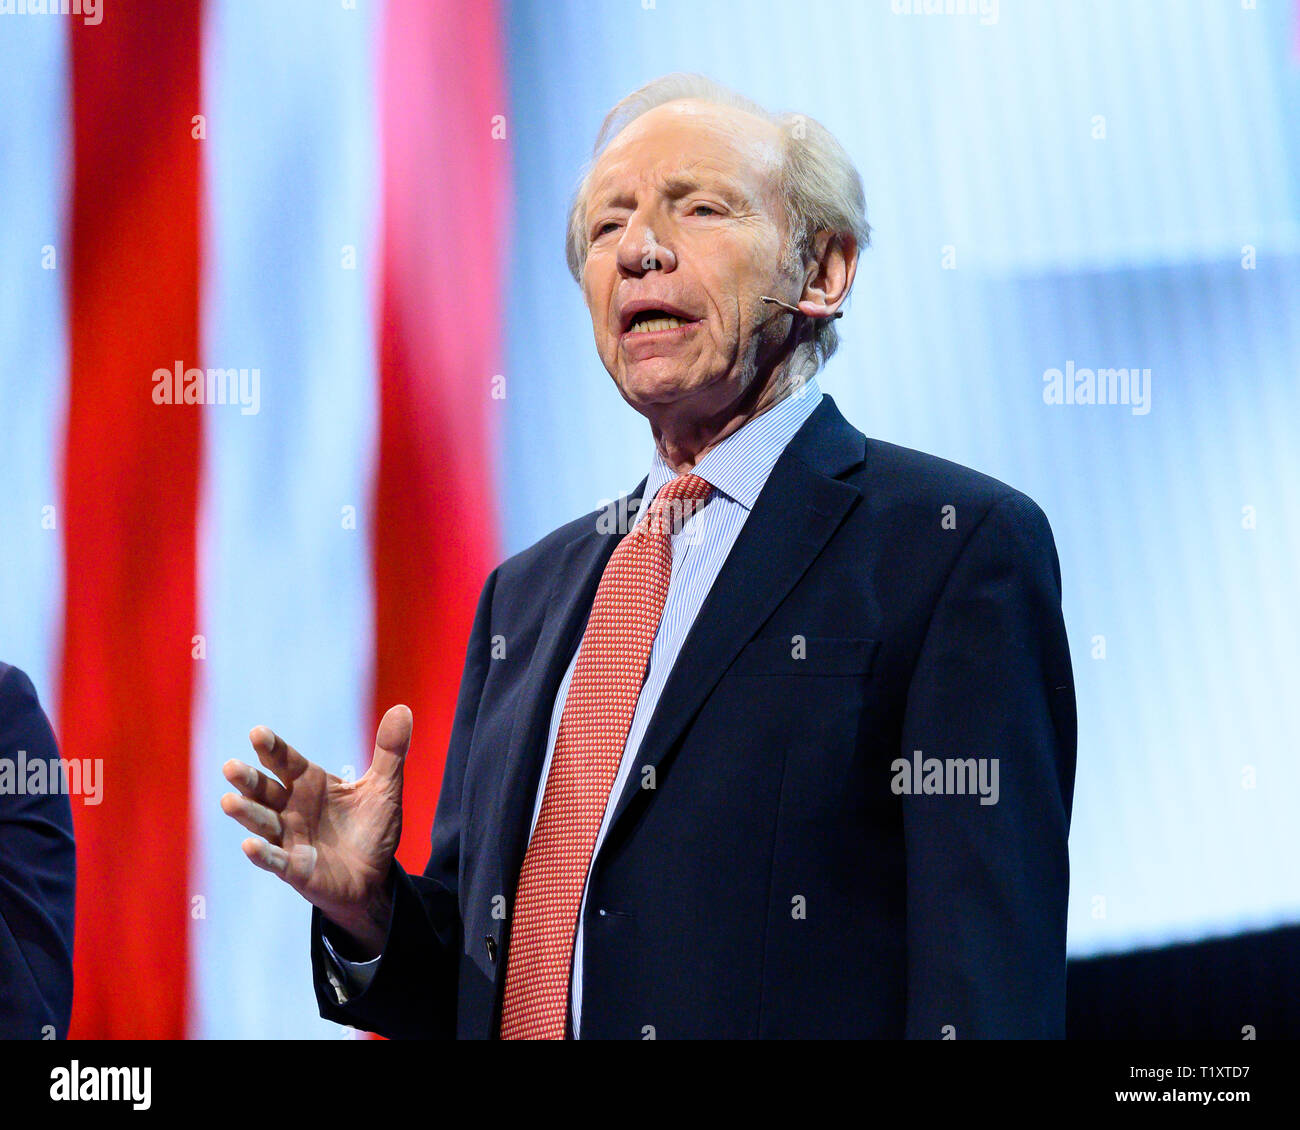 Former U.S. Senator Joe Lieberman (I-CT) seen speaking during the American Israel Public Affairs Committee (AIPAC) Policy Conference in Washington, DC. - Stock Image